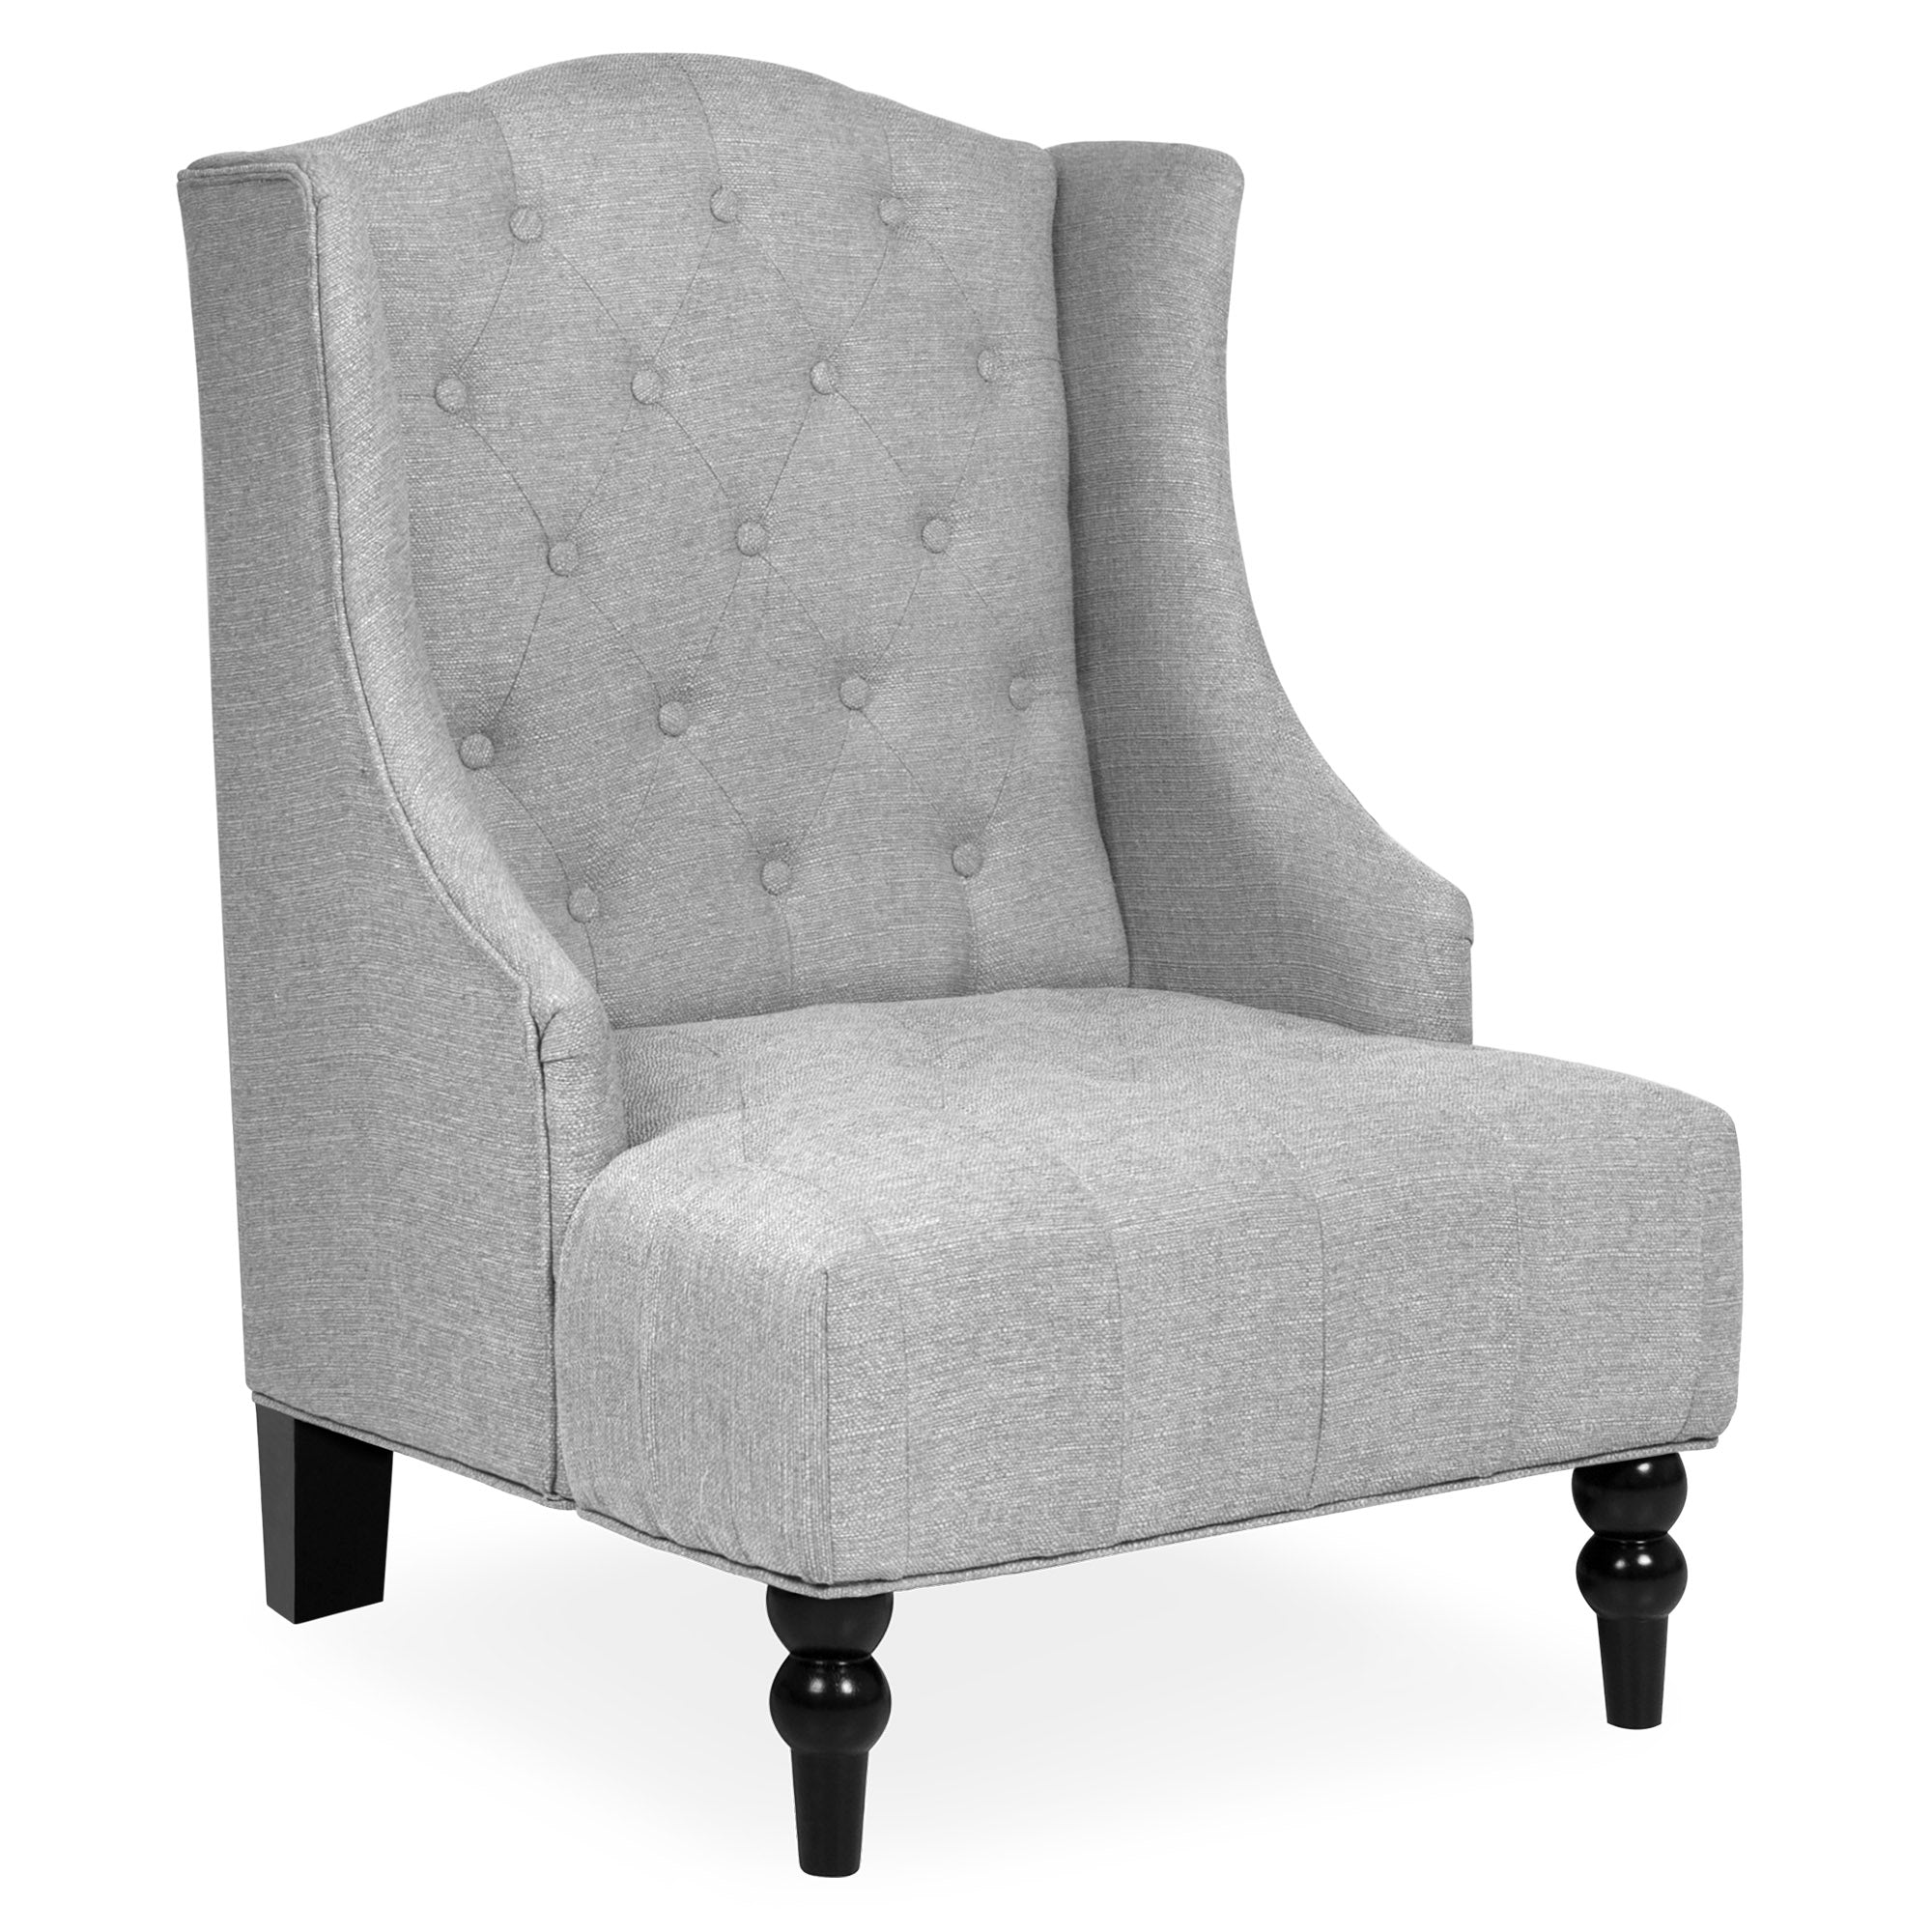 Excellent French Style Tall Wingback Tufted Fabric Accent Chair W Wooden Legs Pabps2019 Chair Design Images Pabps2019Com